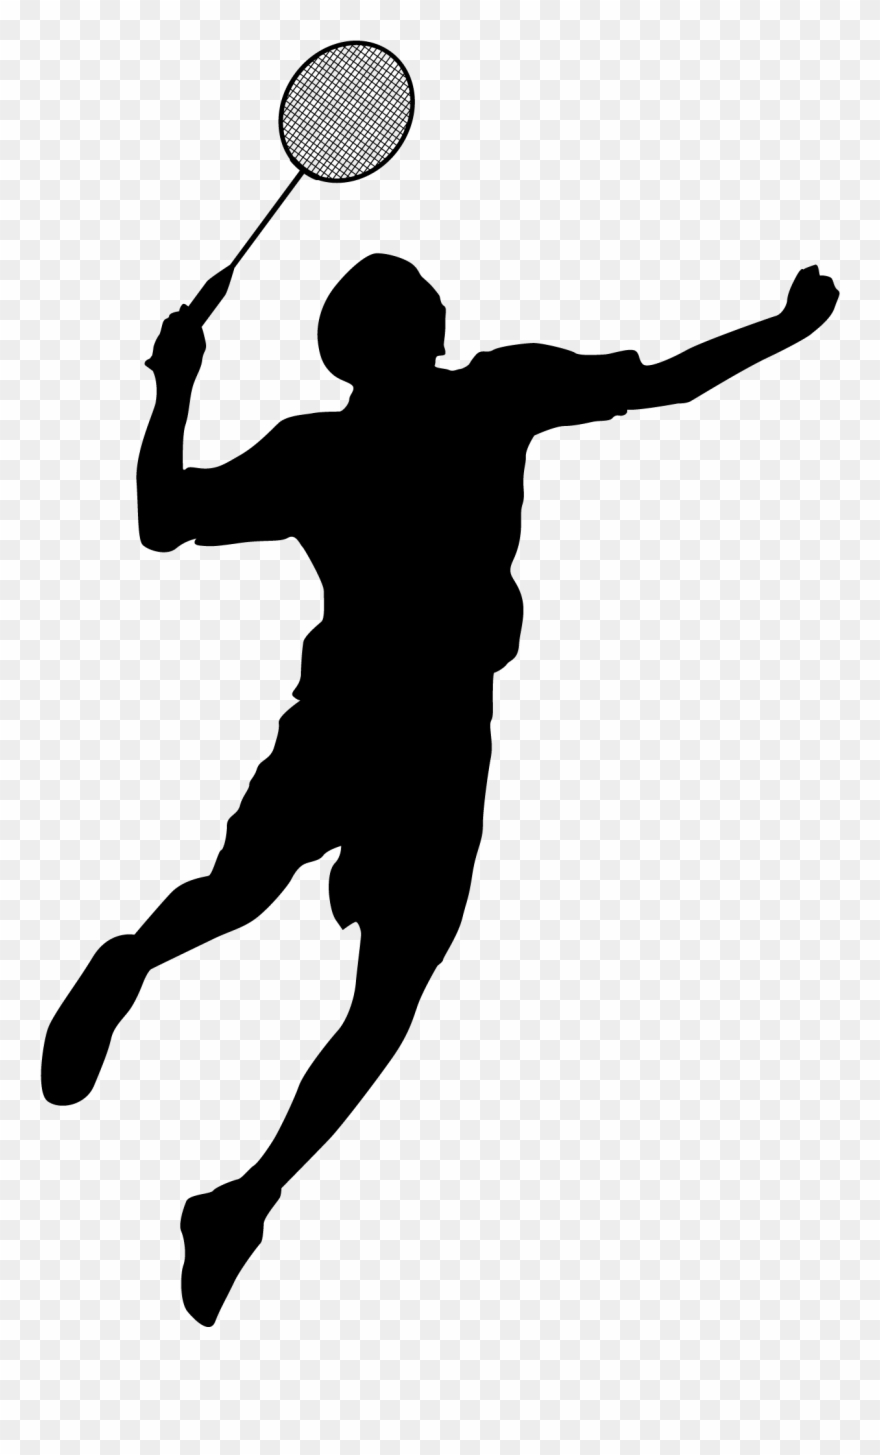 Sports figures clipart clipart Silhouette Sports Figures At Getdrawings - 羽毛球 剪影 ... clipart